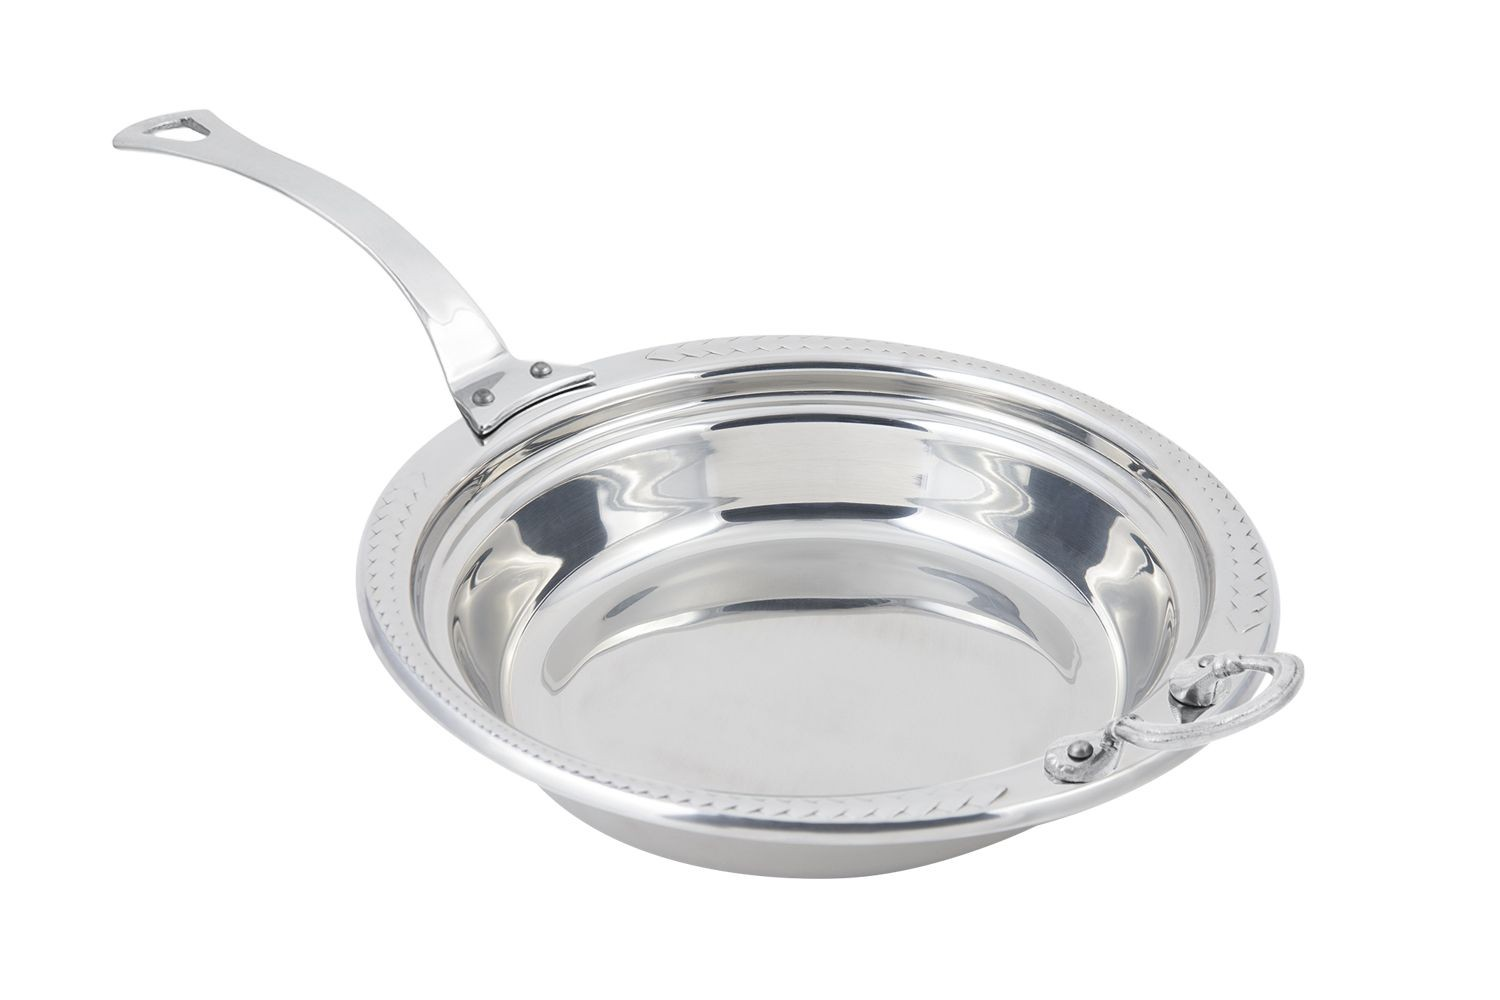 Bon Chef 5455HLSS Laurel Design Casserole Dish with Long Handle, 2 1/2 Qt.